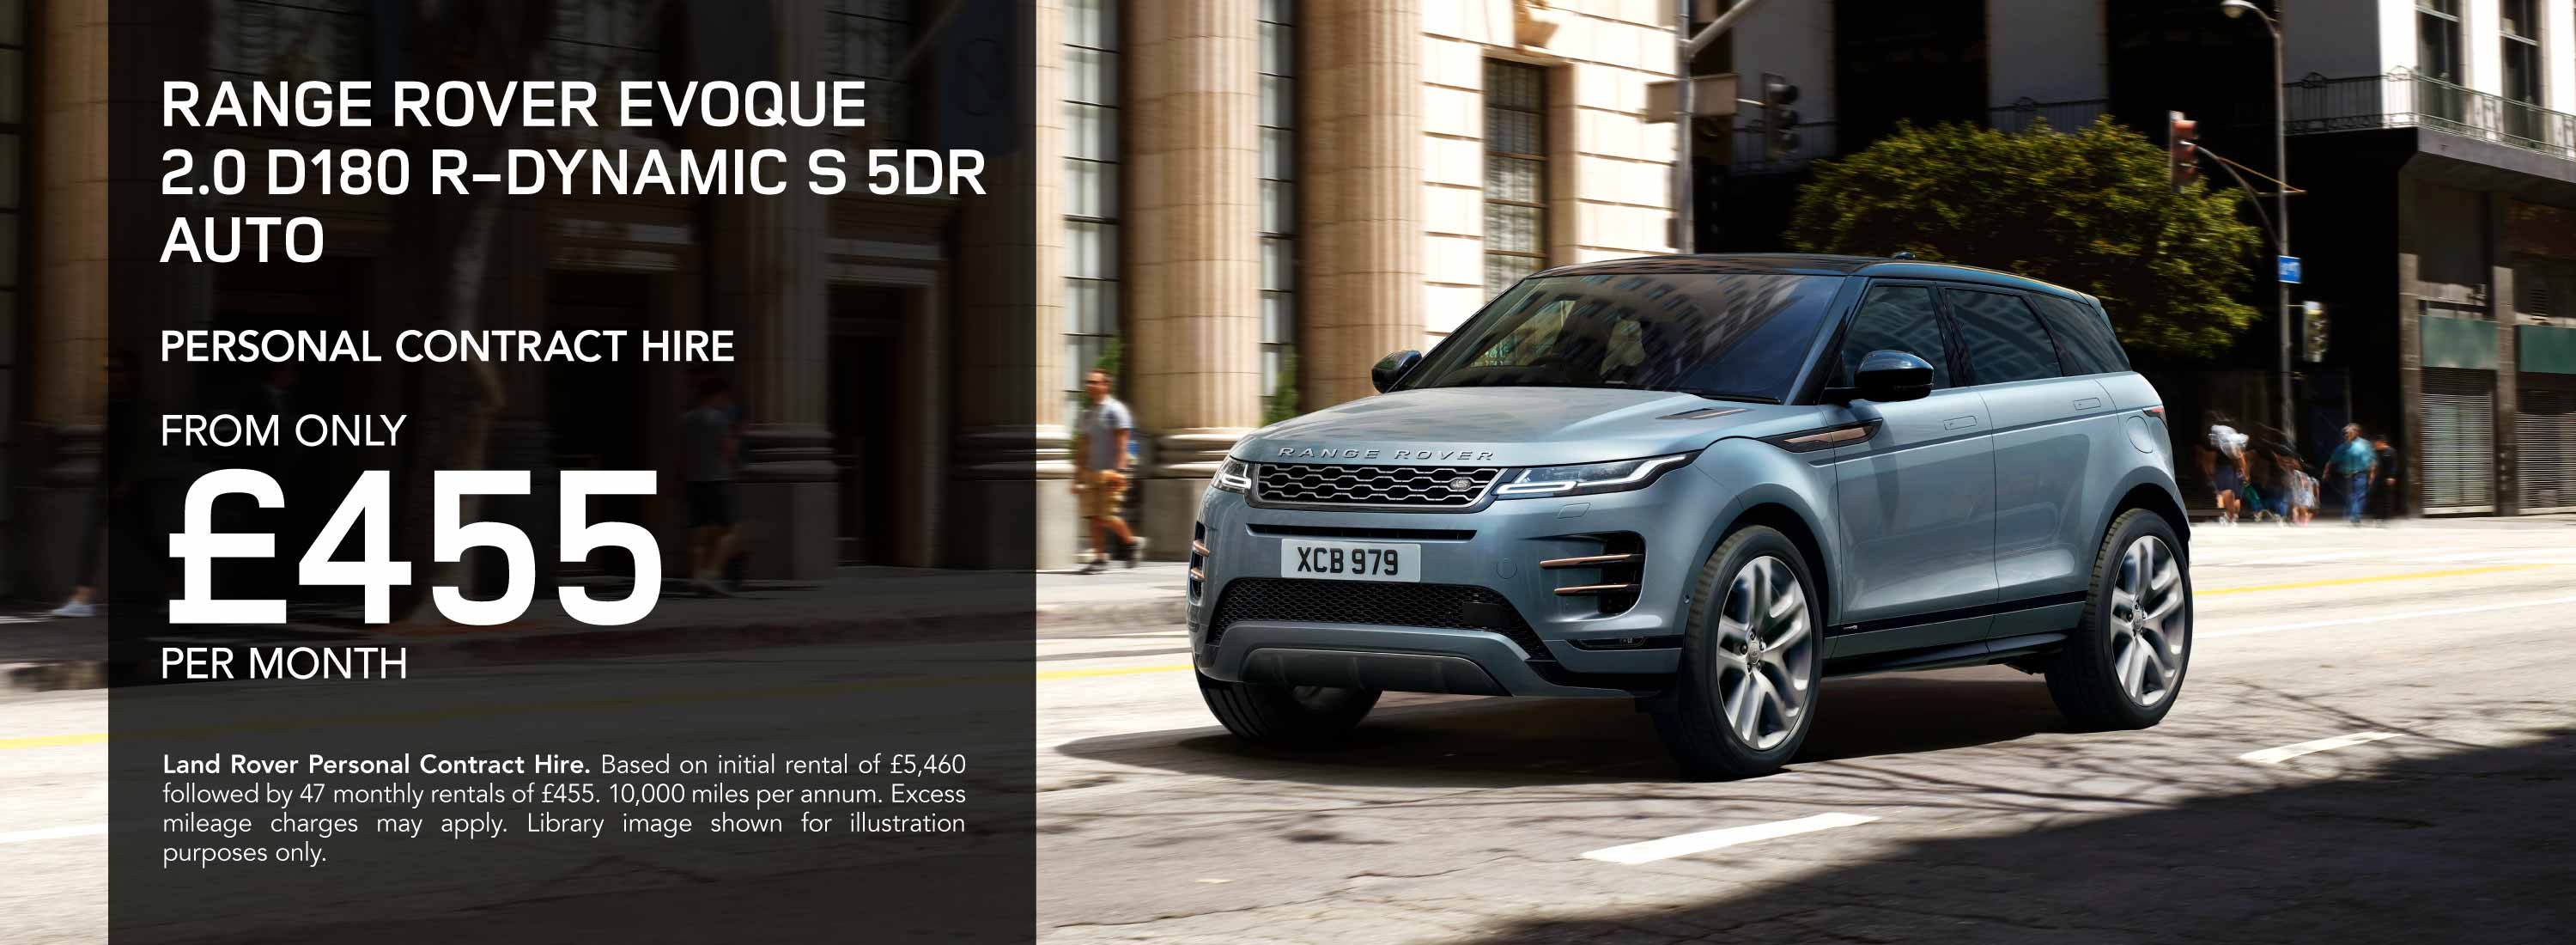 Range Rover Evoque Personal Contract Hire Offer